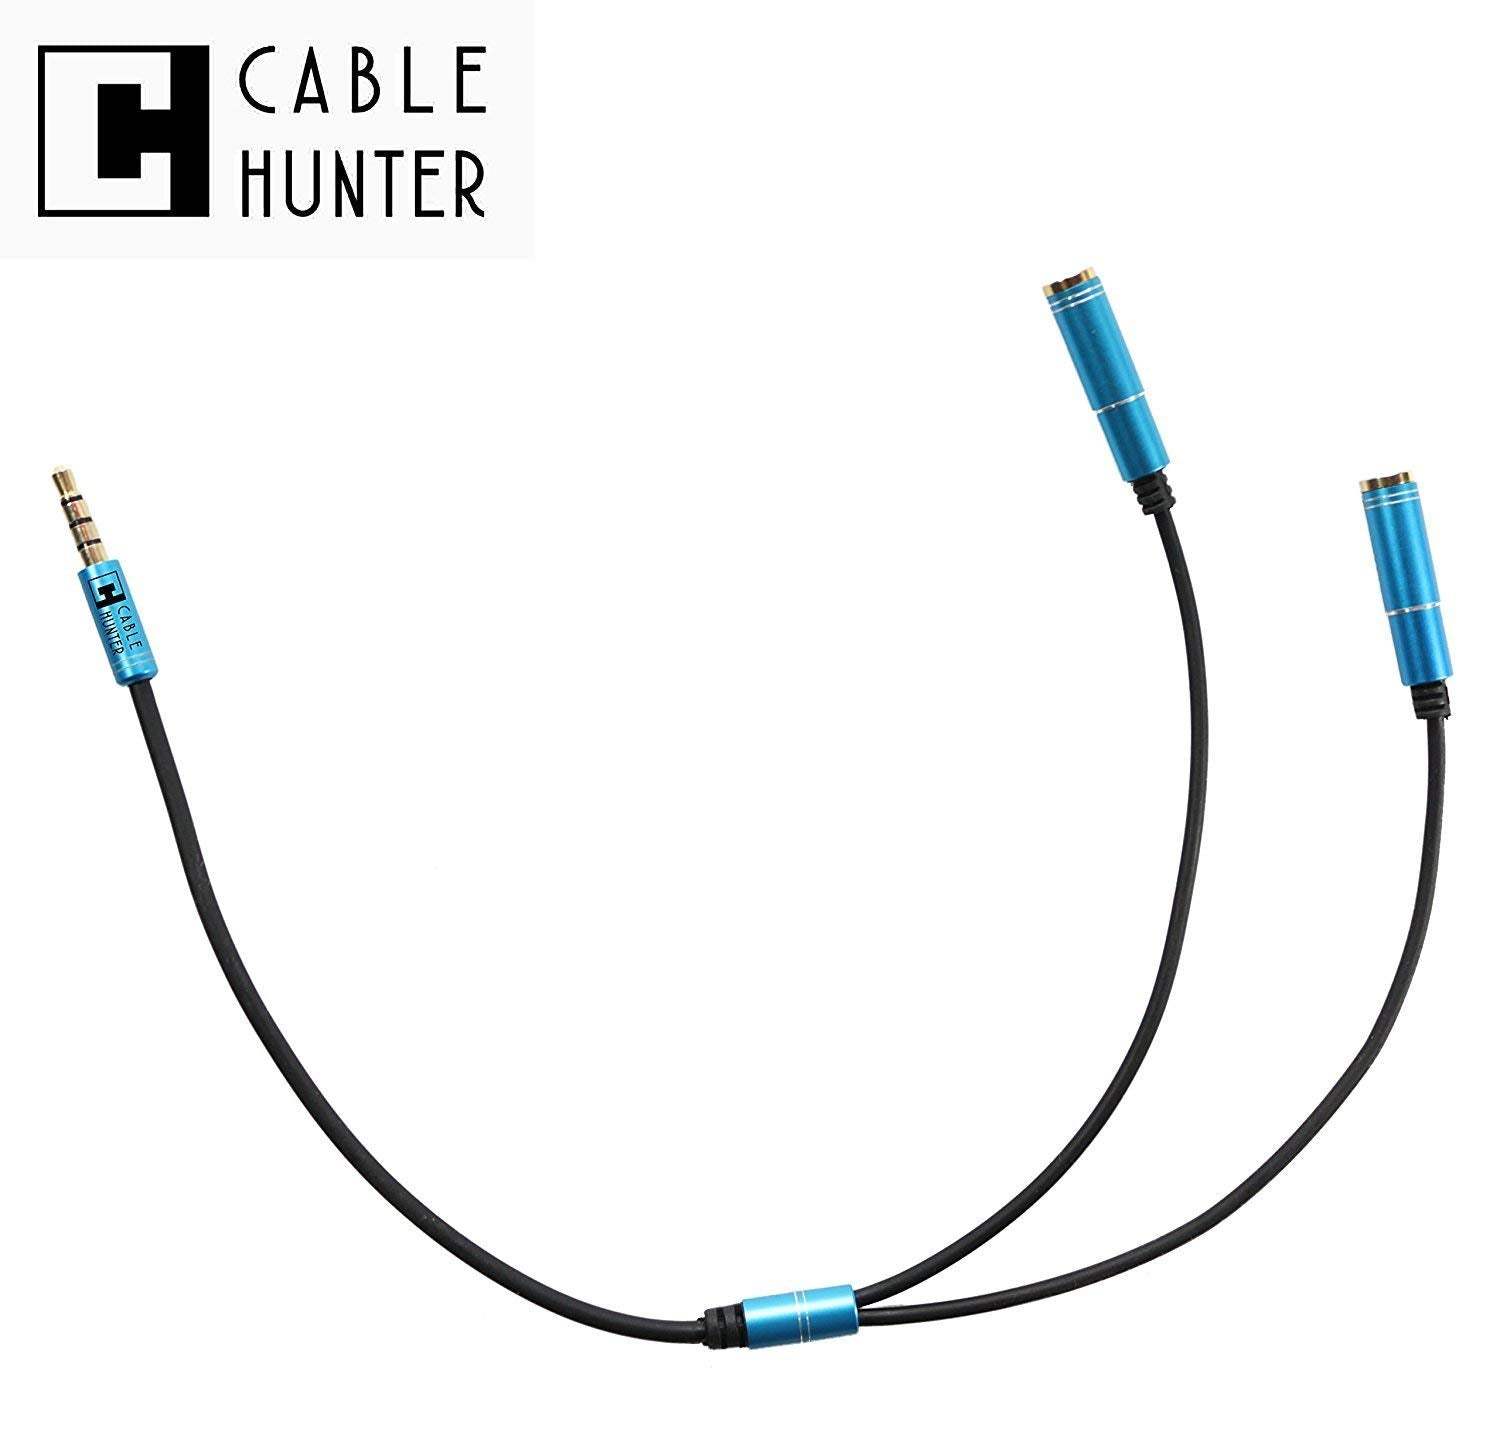 Headphone Splitter Audio Cable 3.5mm Male to 2 Female Jack